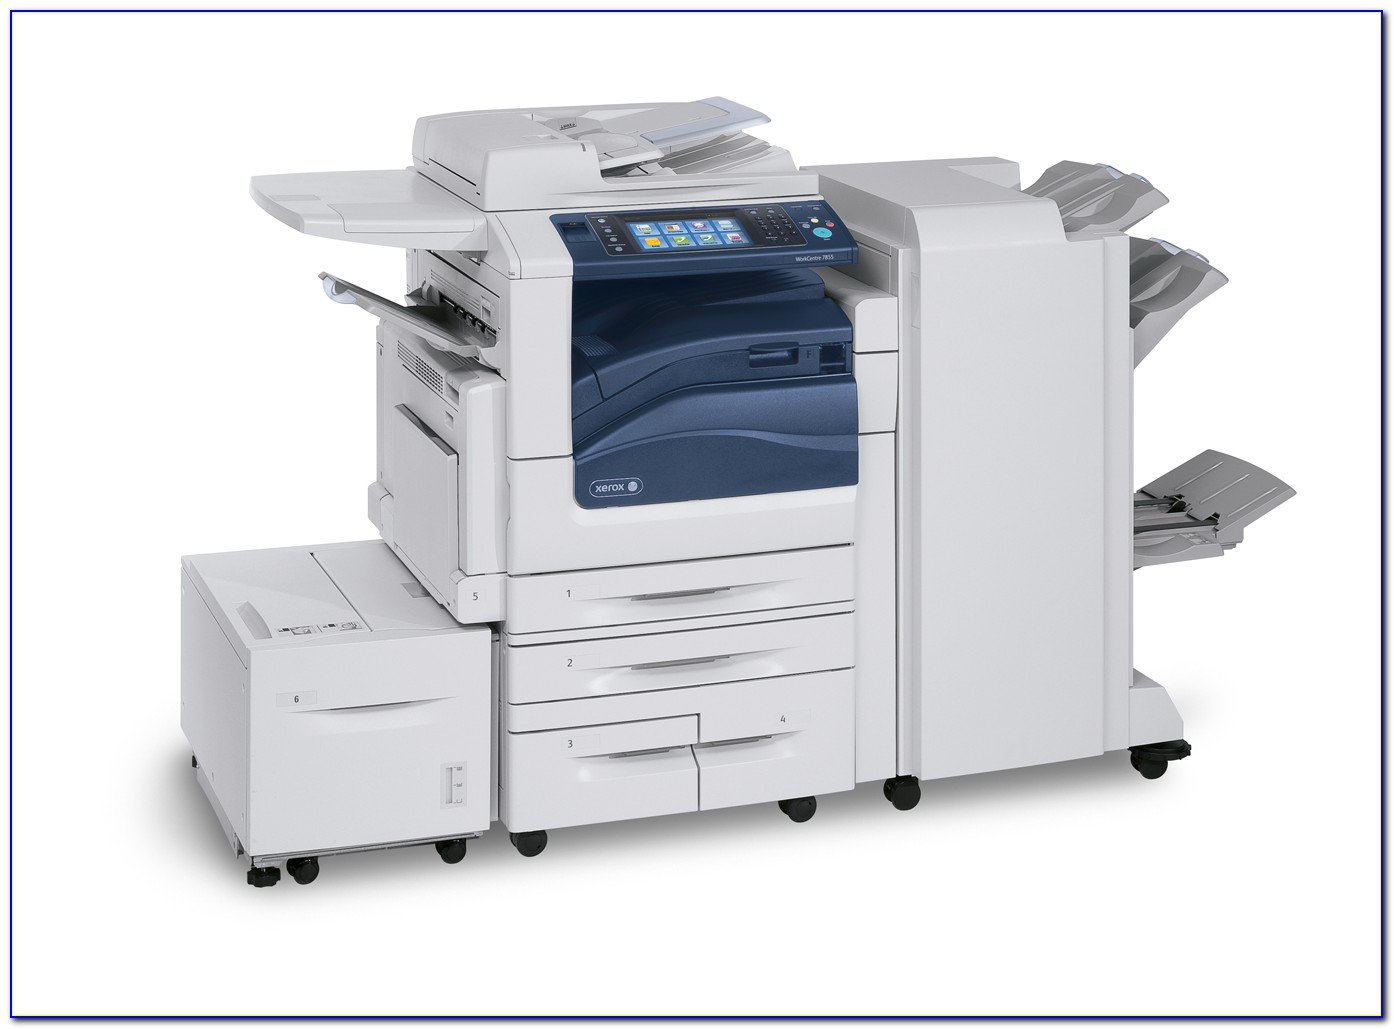 Xerox Wc 7835 Specifications